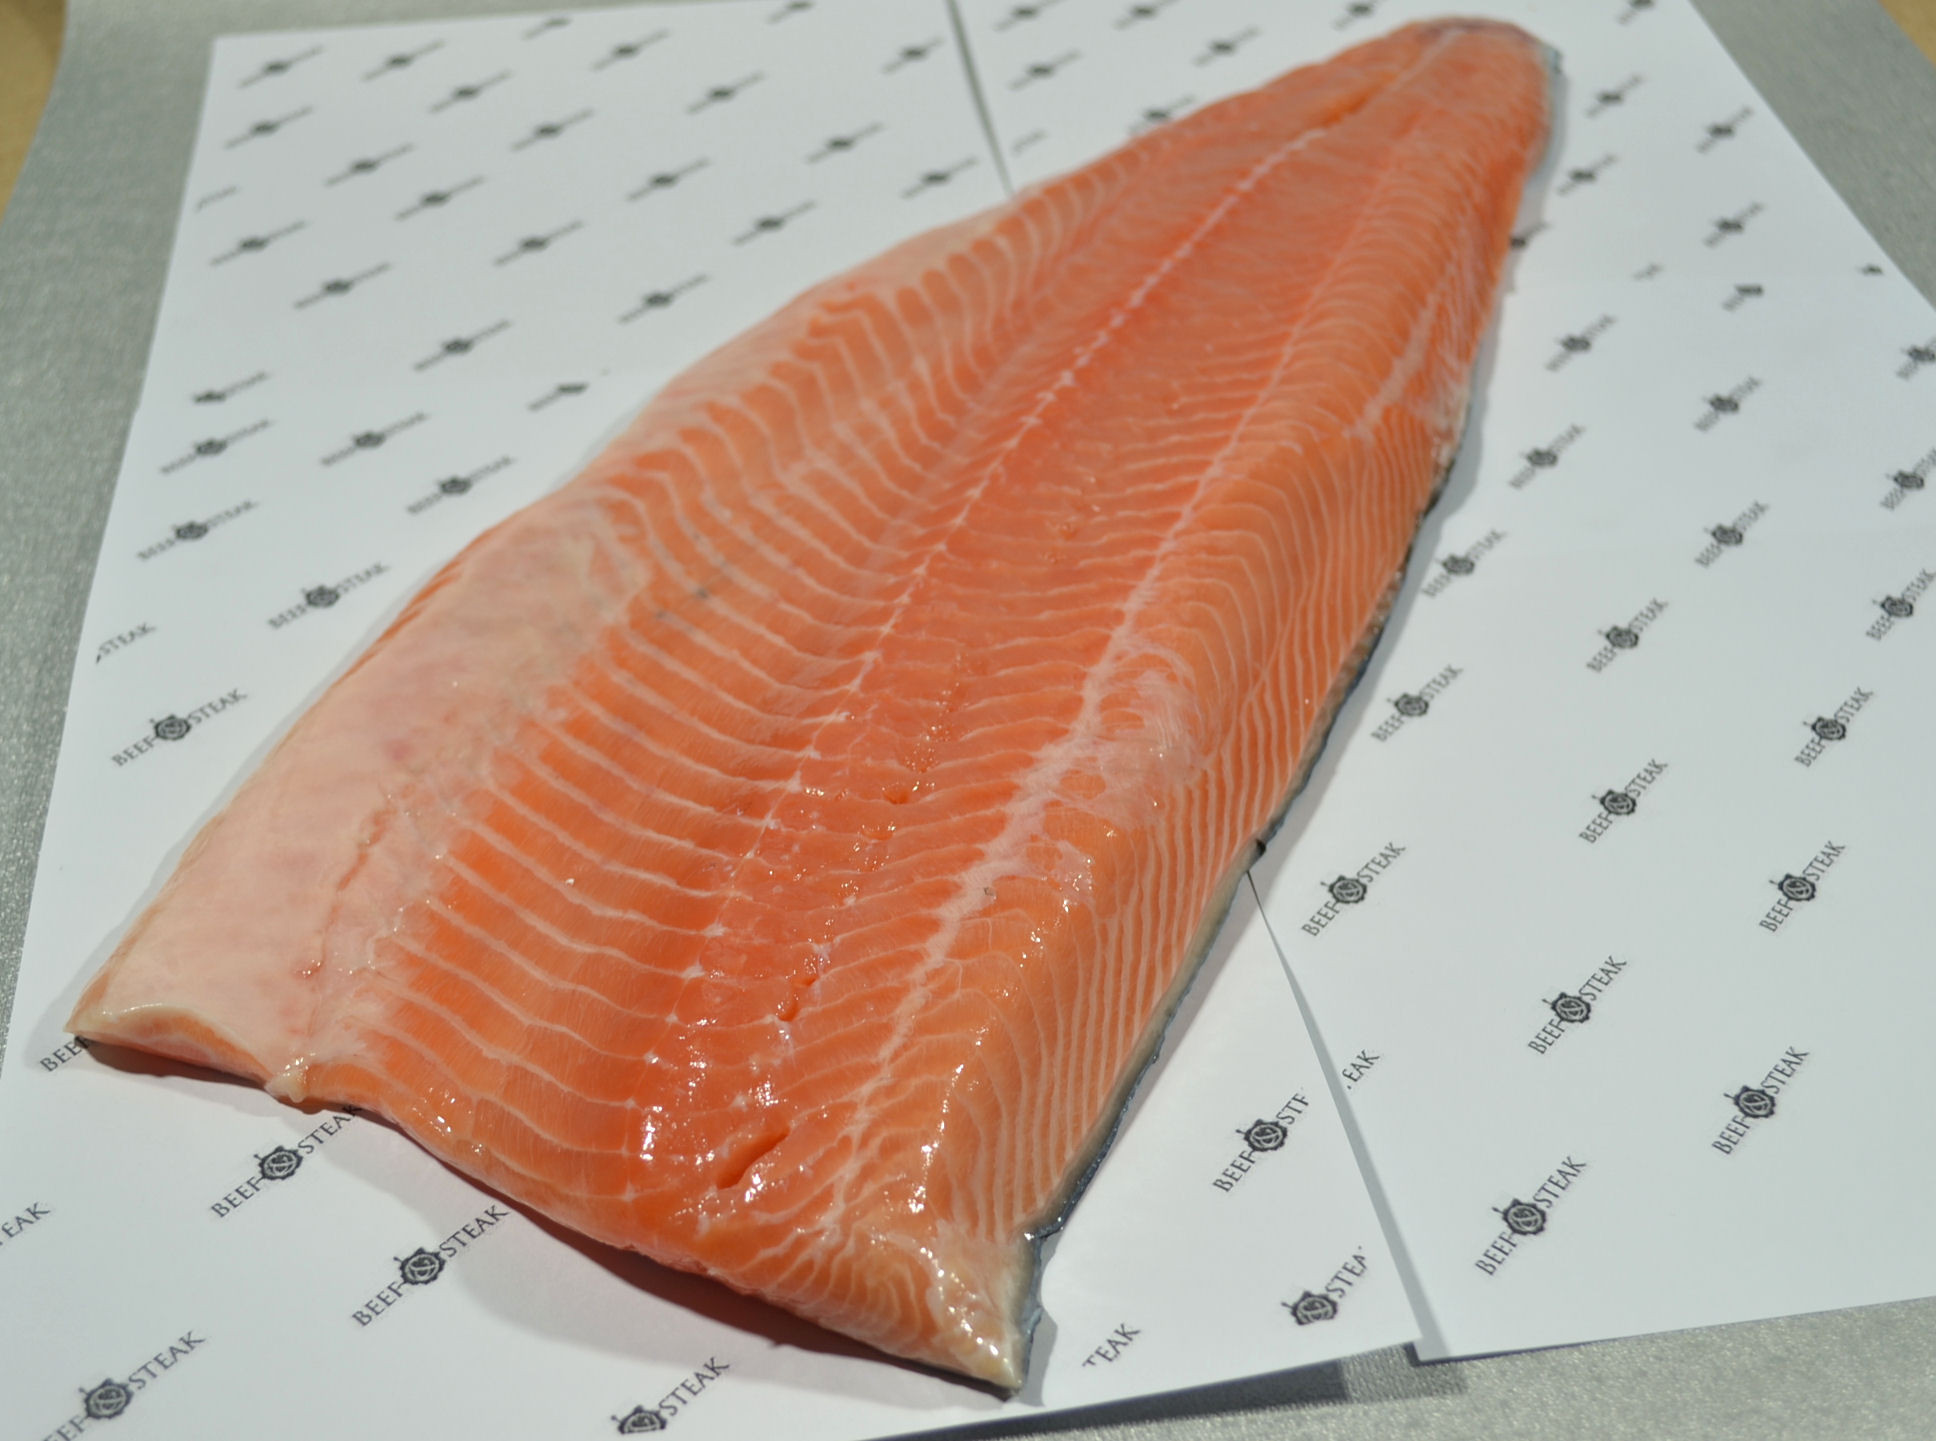 Salmon fillet with skin